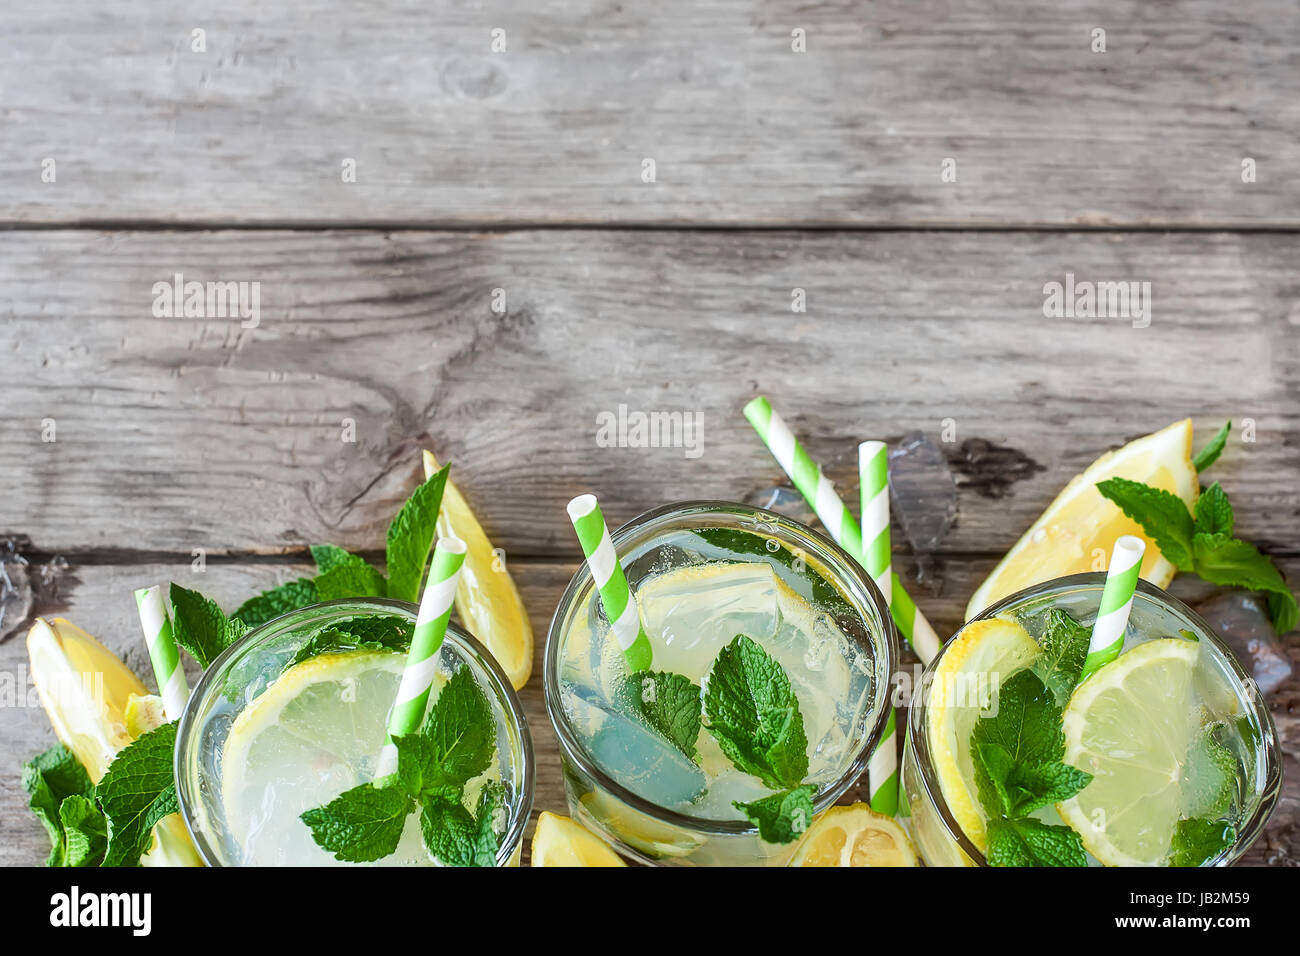 Chilled mint lemonade with mint leaves and fresh lemon. Copy space background. - Stock Image